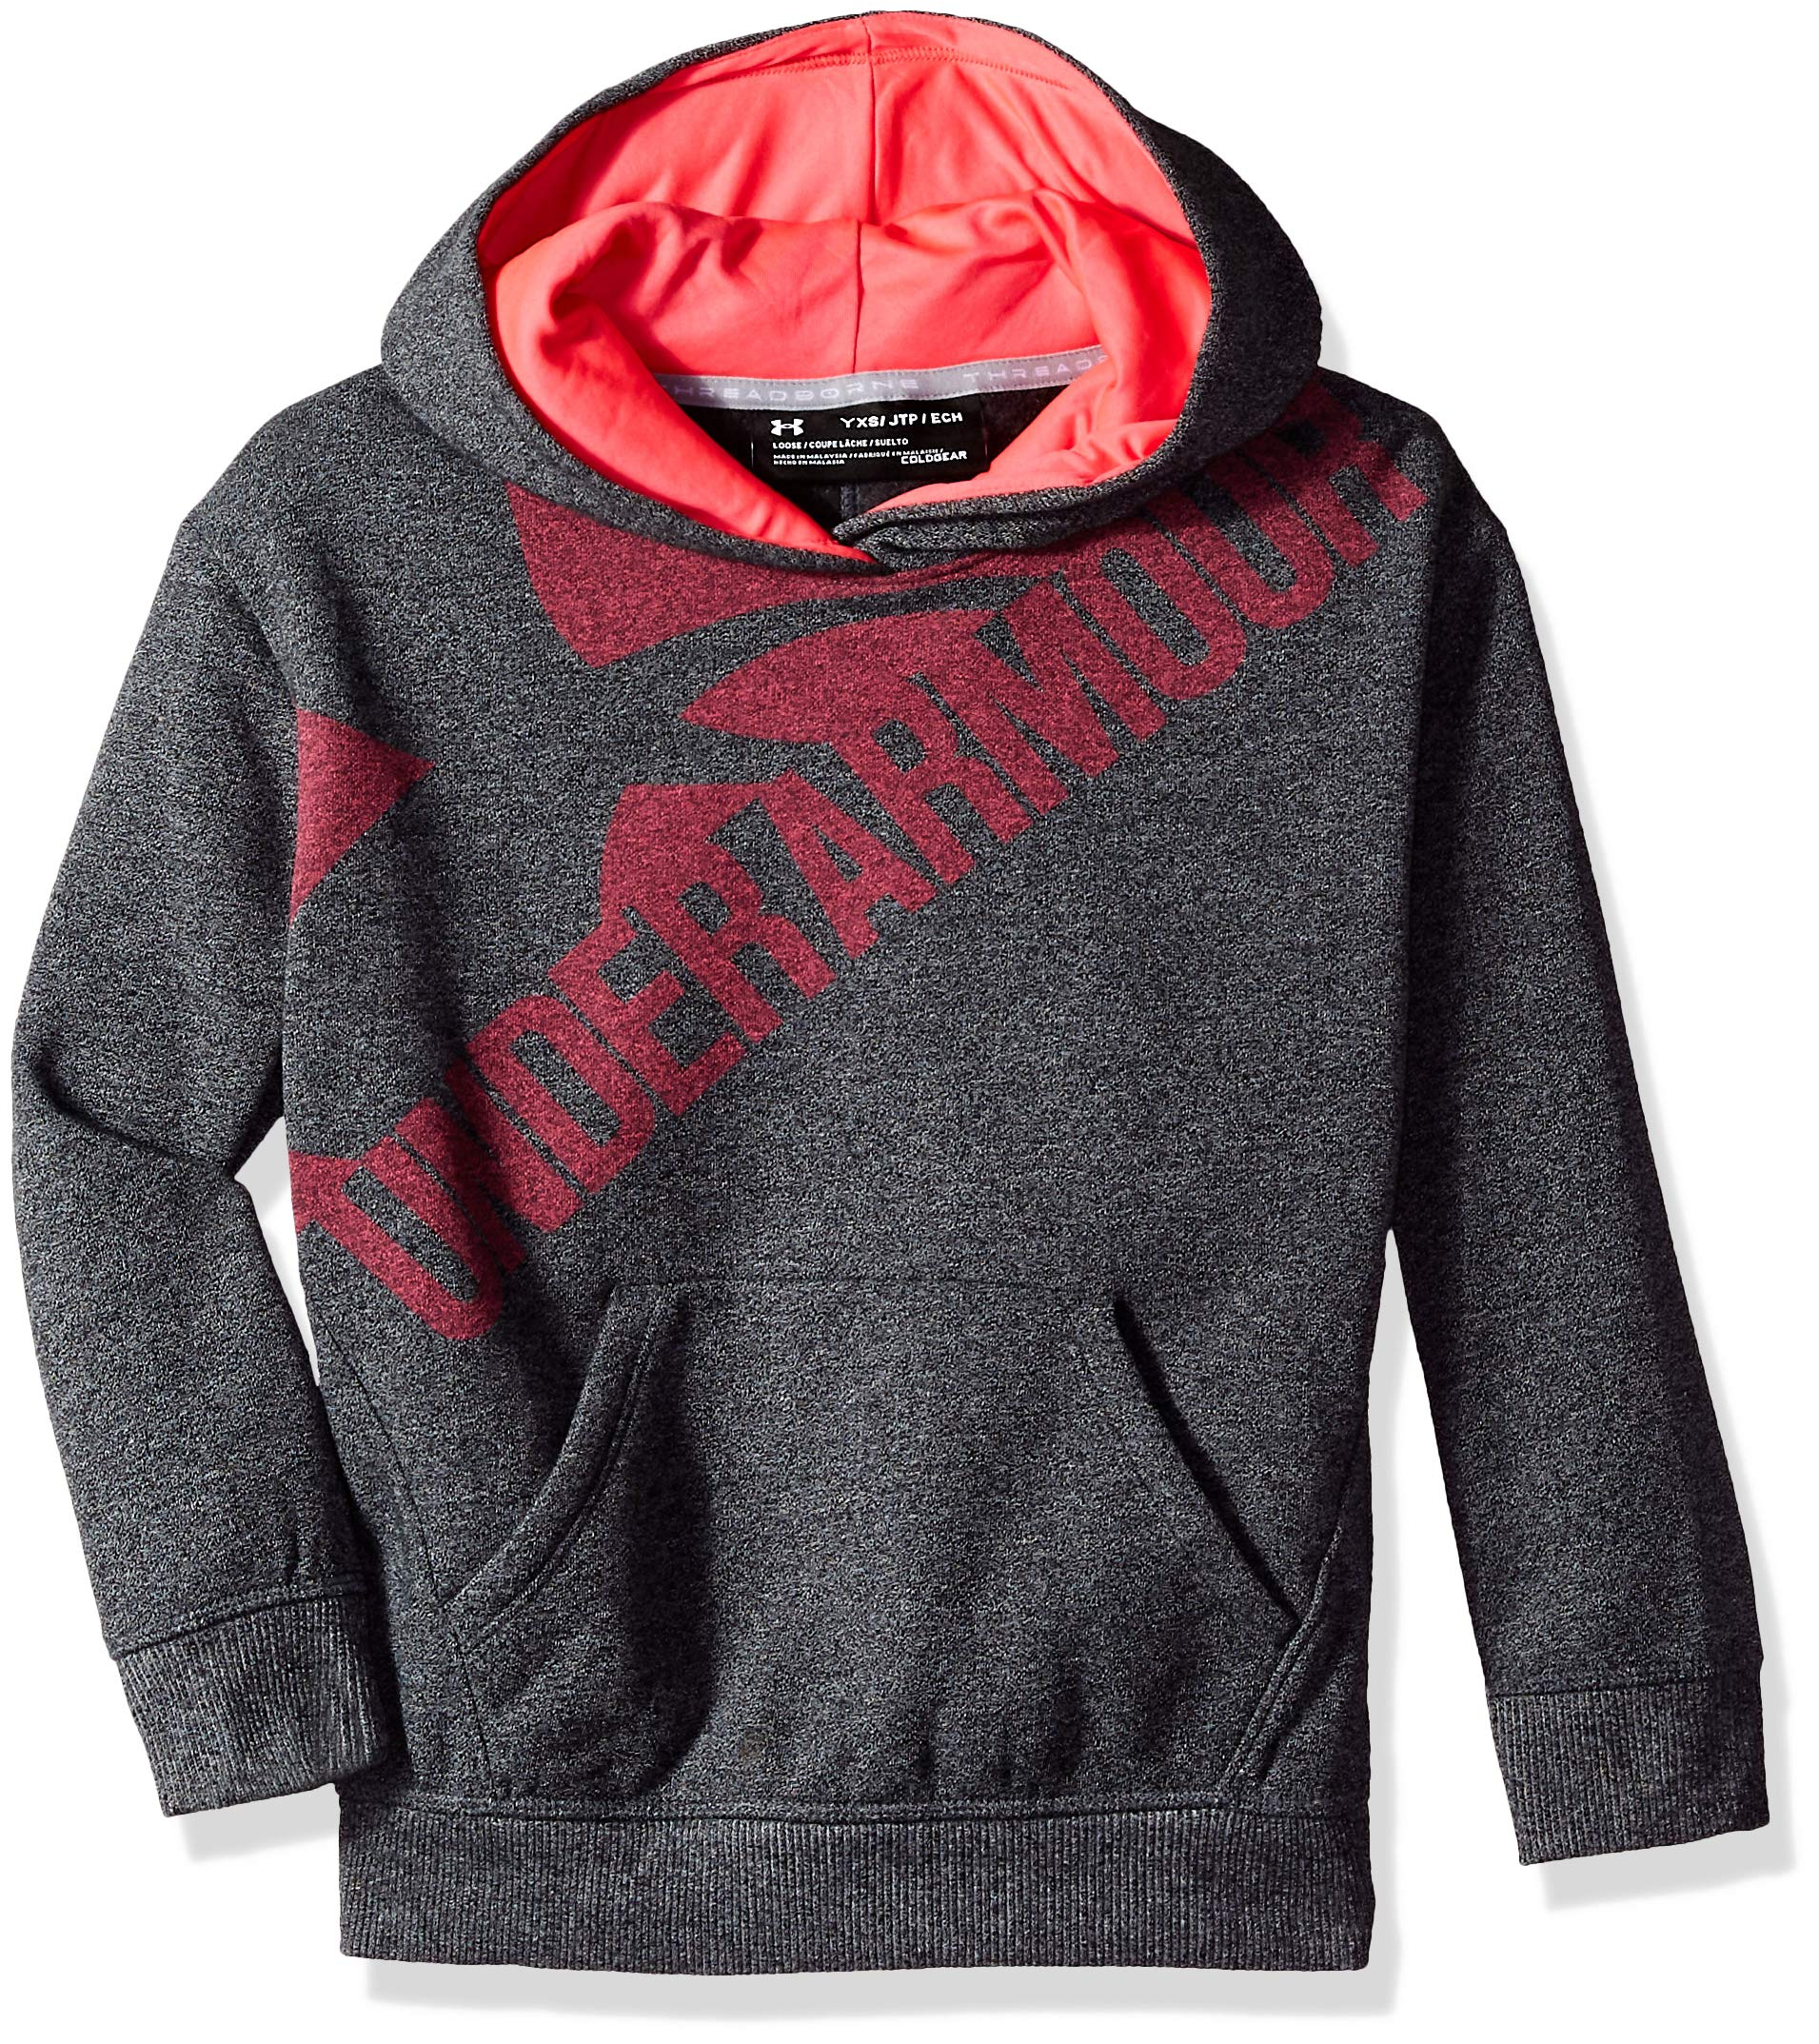 Under Armour Girls' Threadborne Novelty Fleece Hoodie,Black /Penta Pink, Youth Small